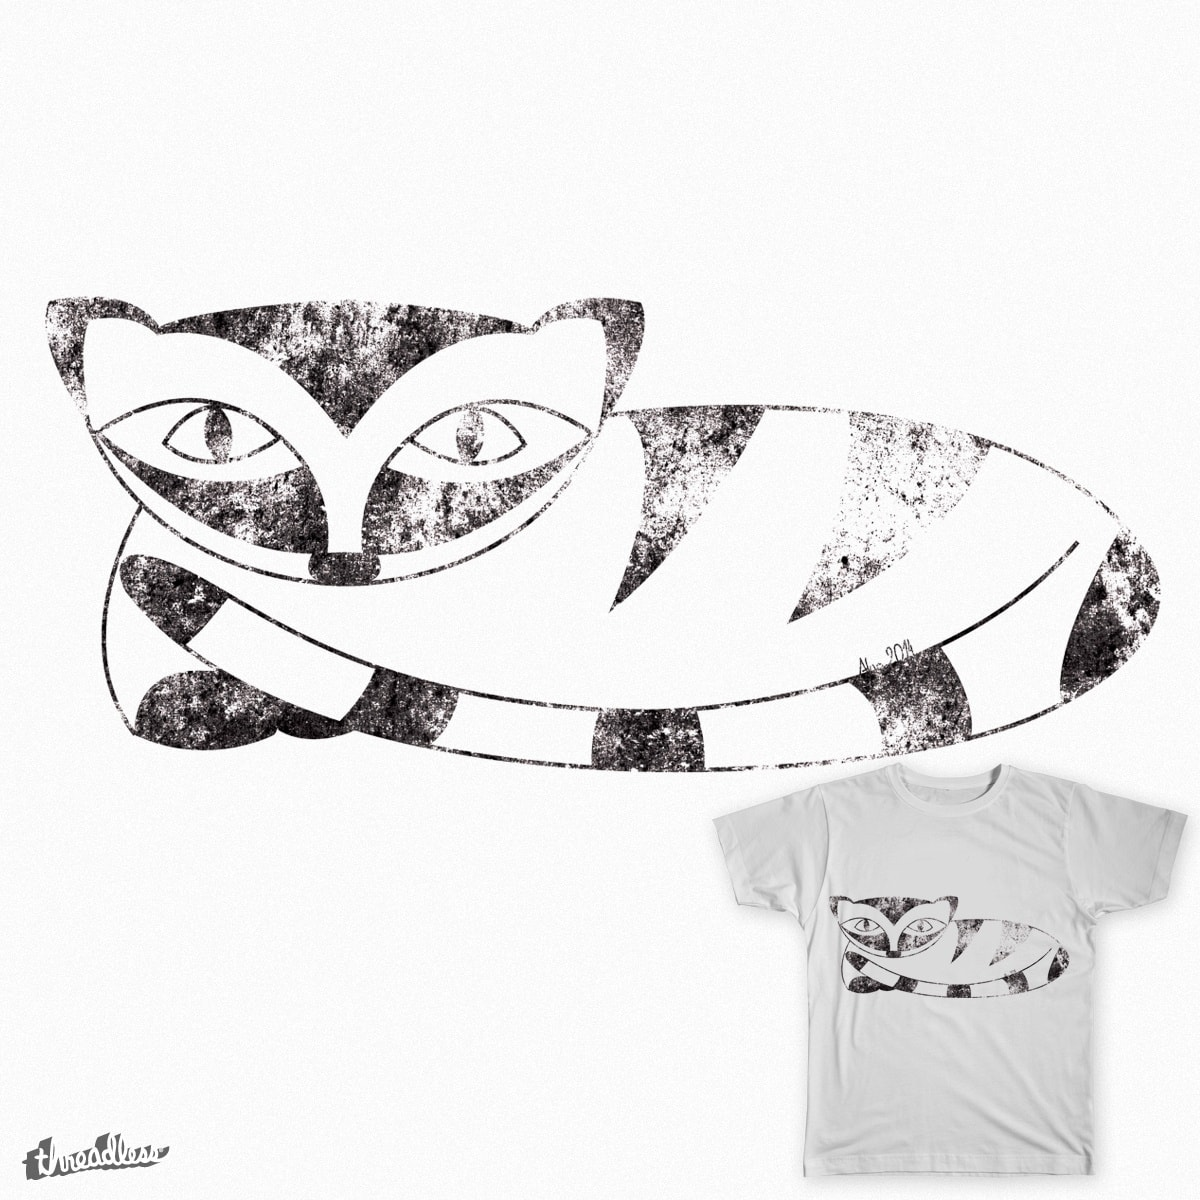 I see you by Aha_C on Threadless